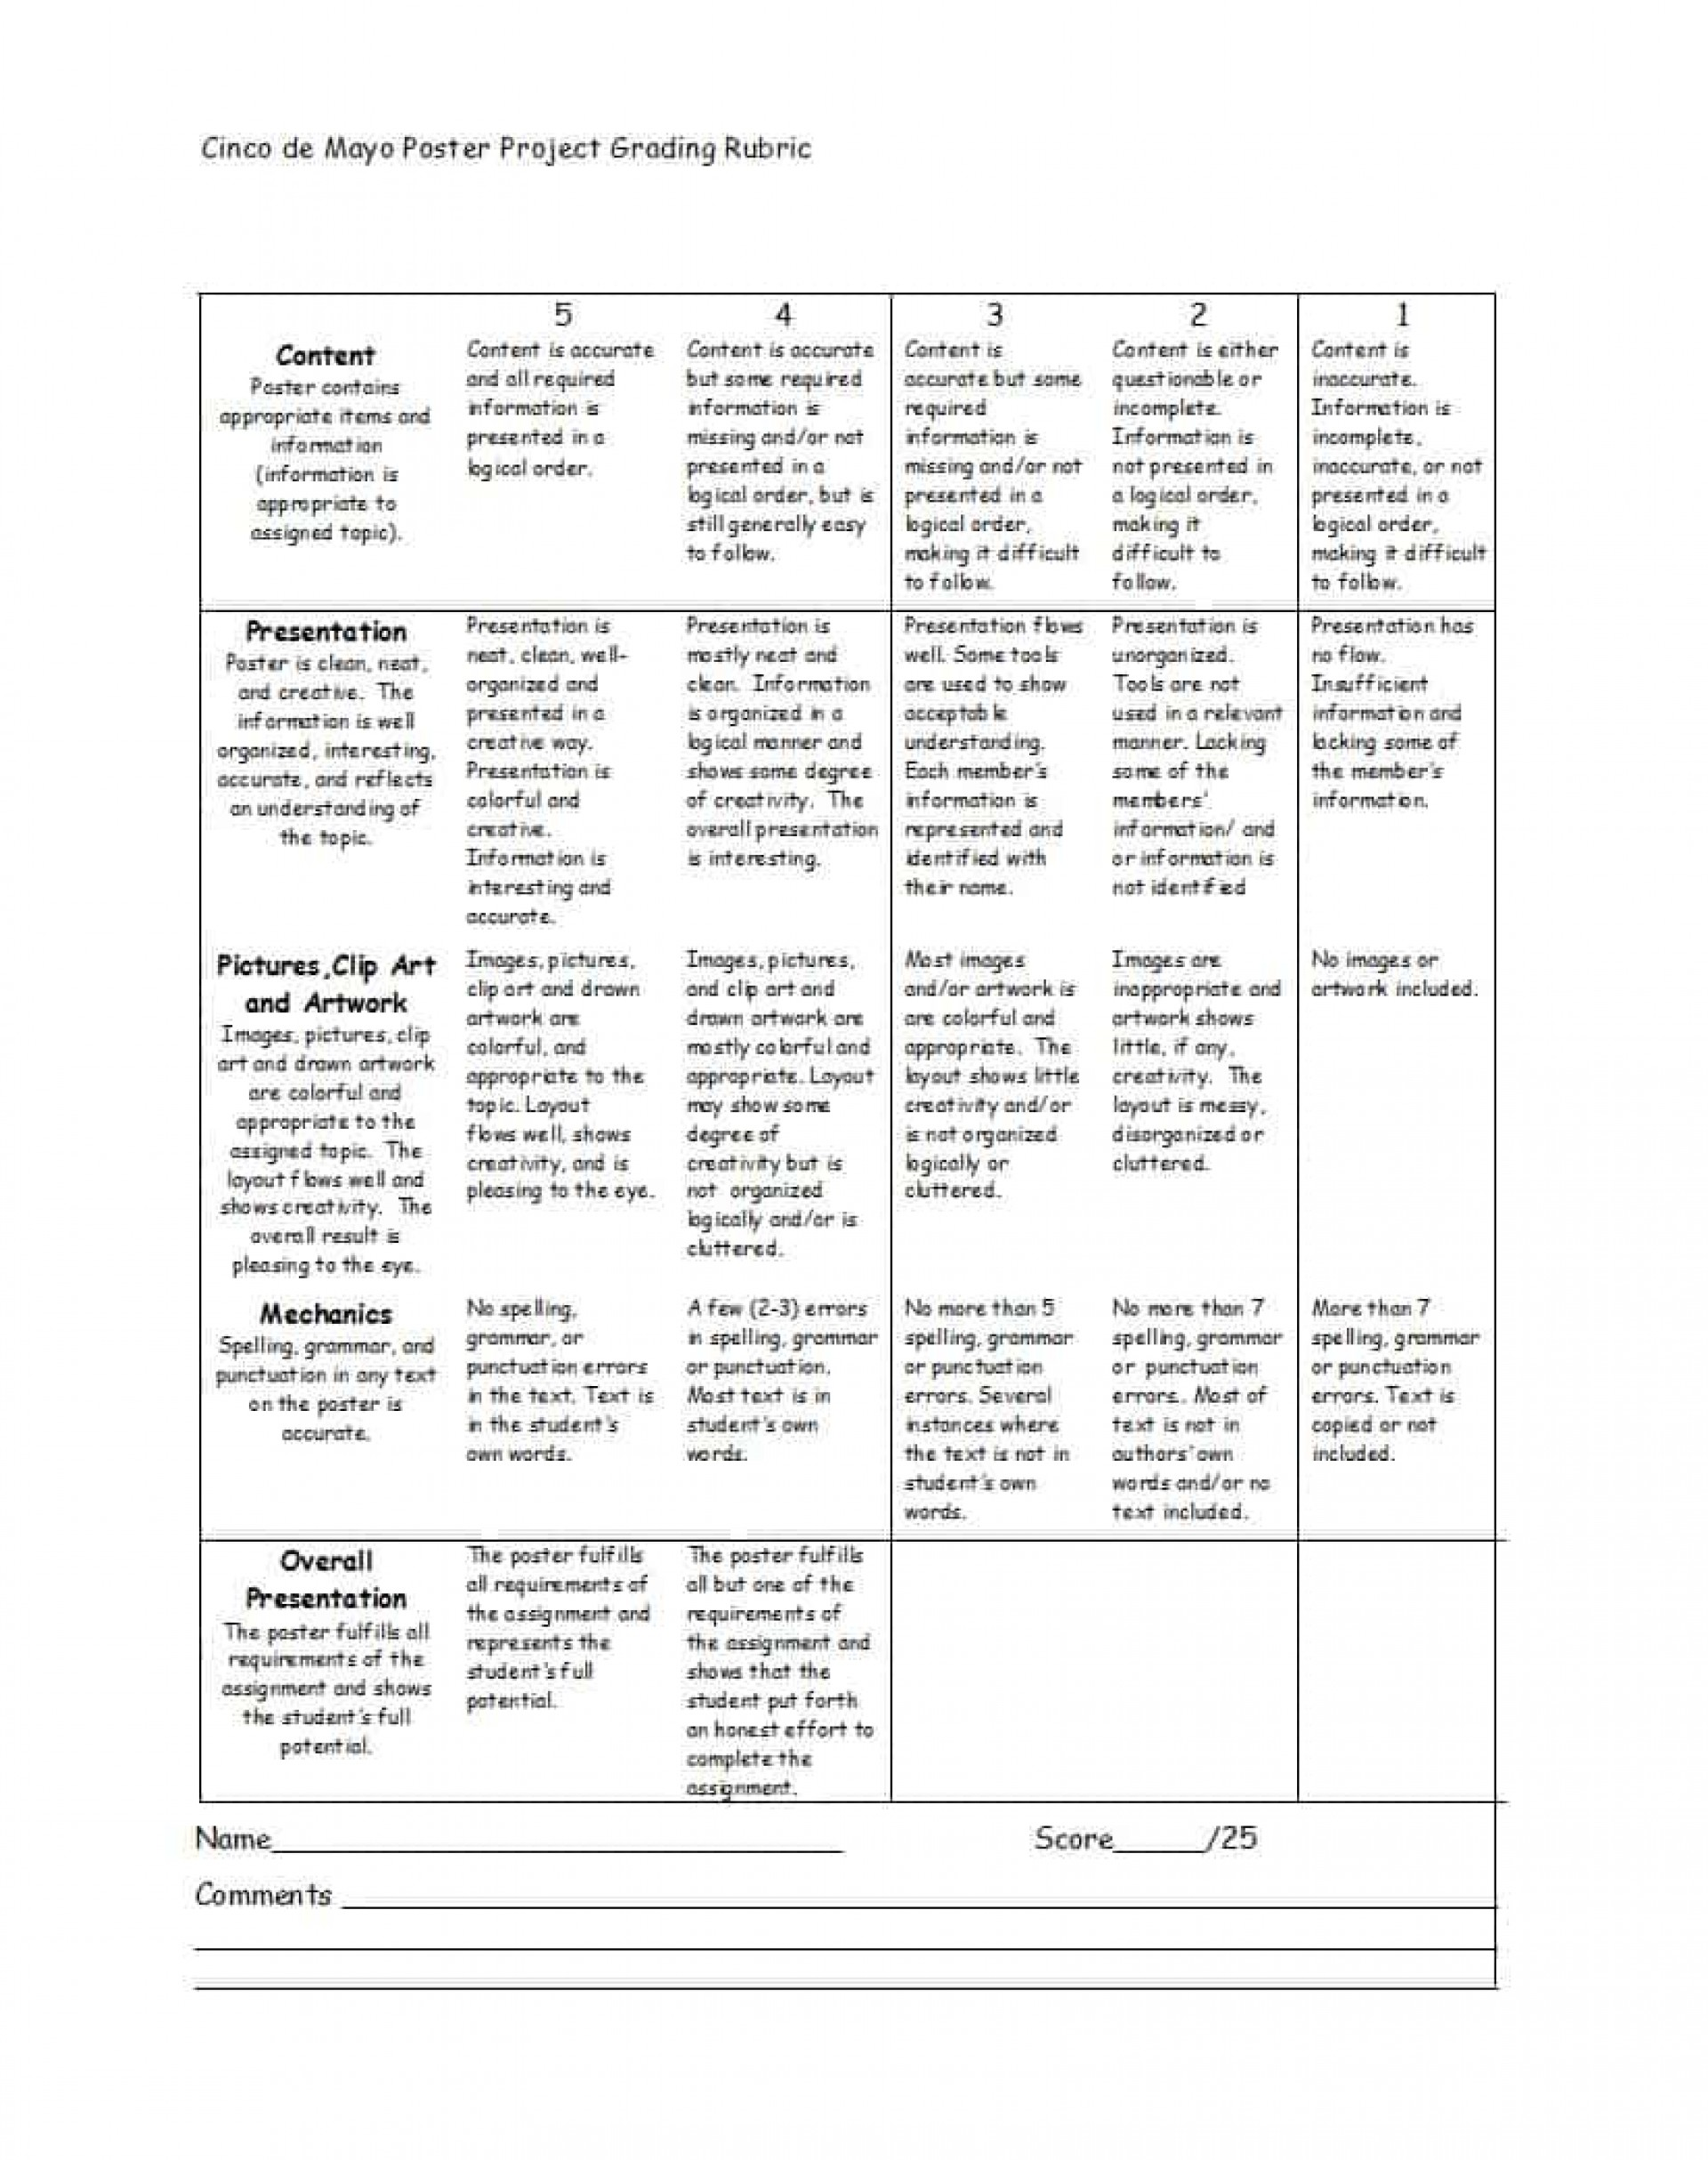 018 Grading Rubric Template High School History Research Formidable Paper 1920